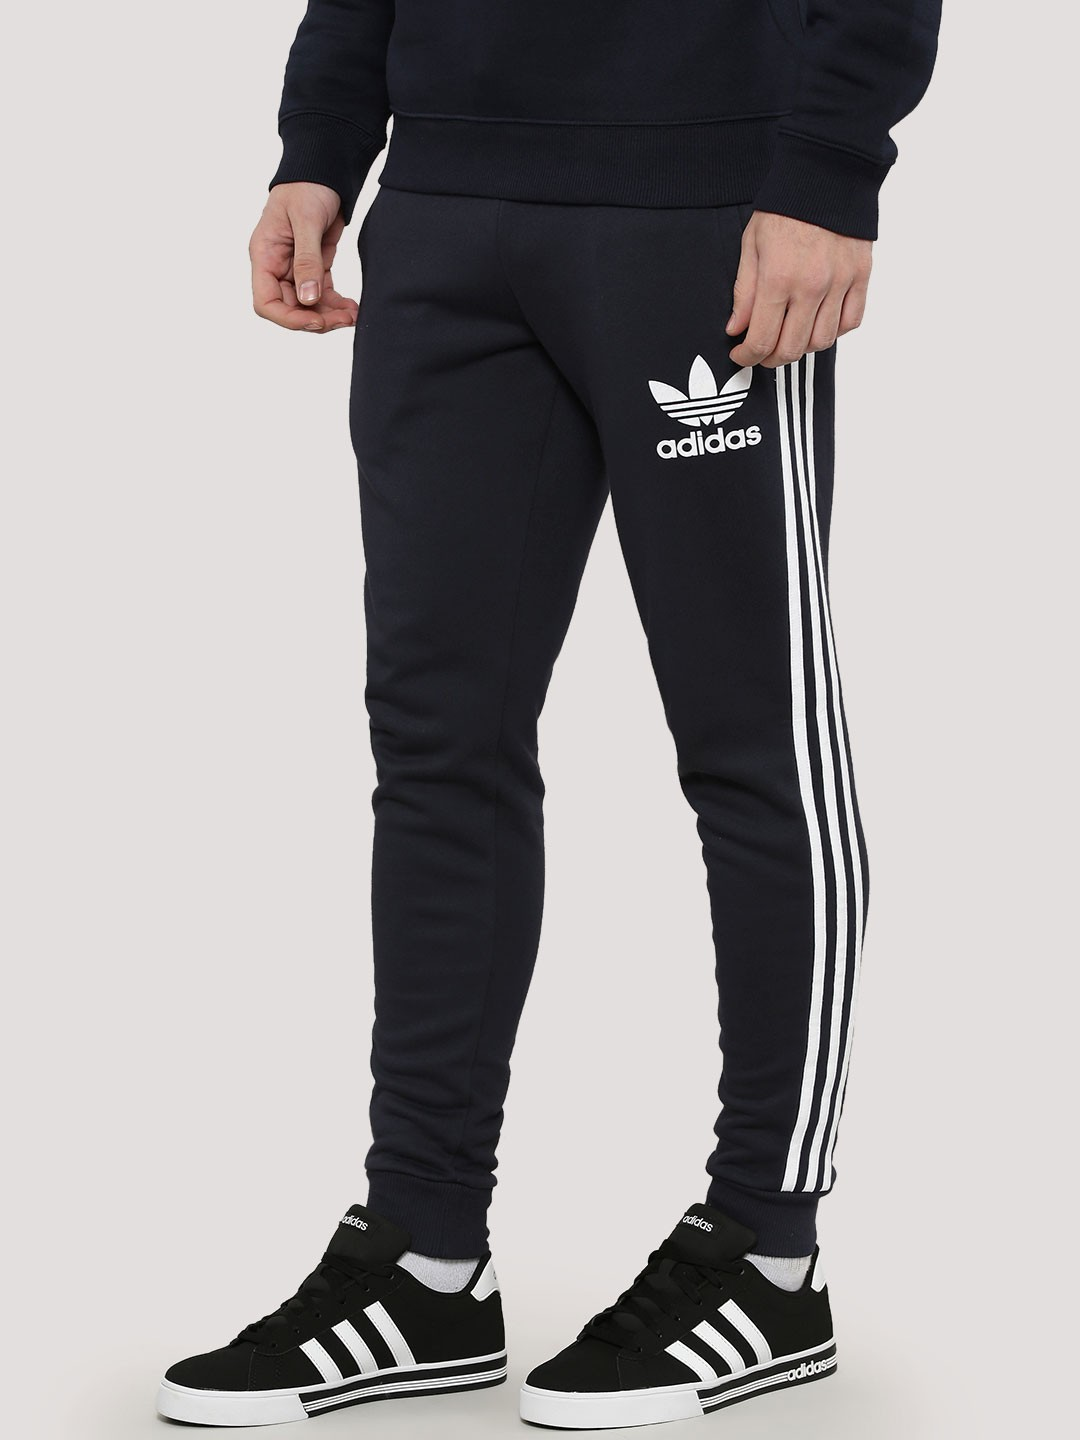 Adidas Joggers Really Comfortable Fashionarrow Com